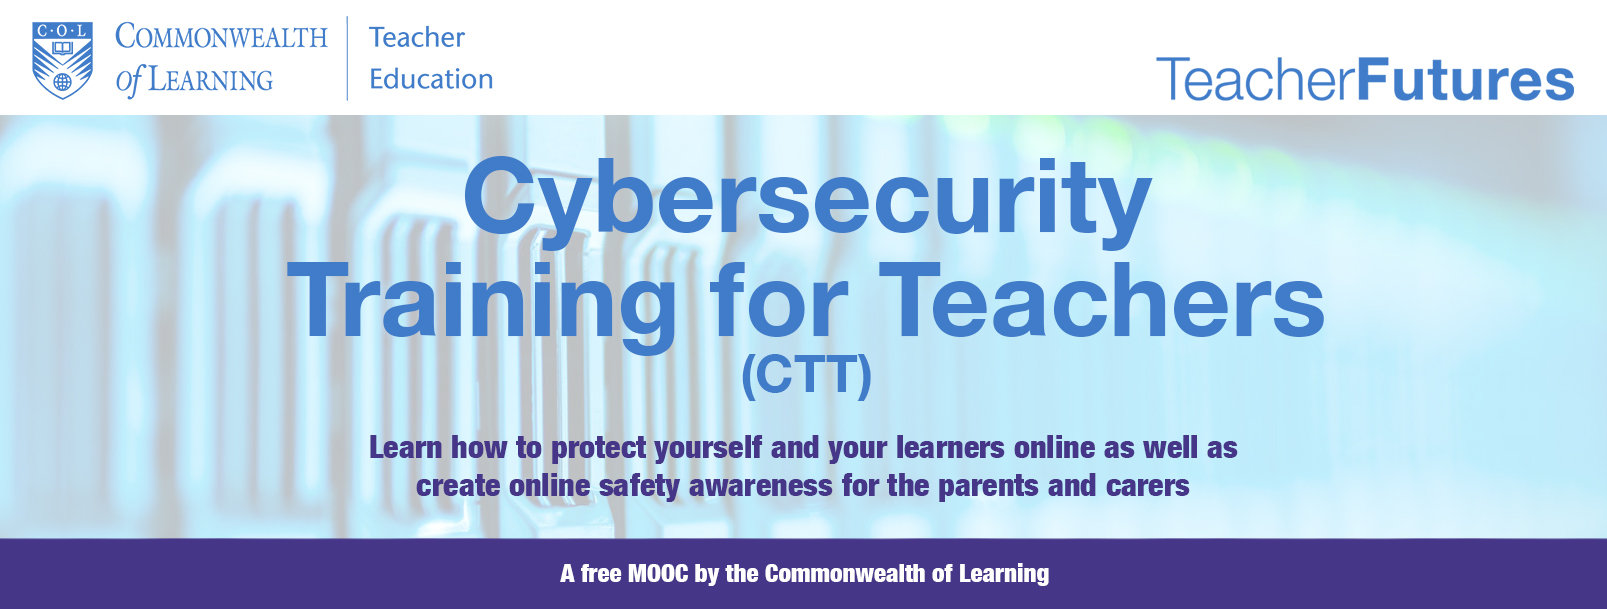 Course Image Cybersecurity Training for Teachers (CTT)